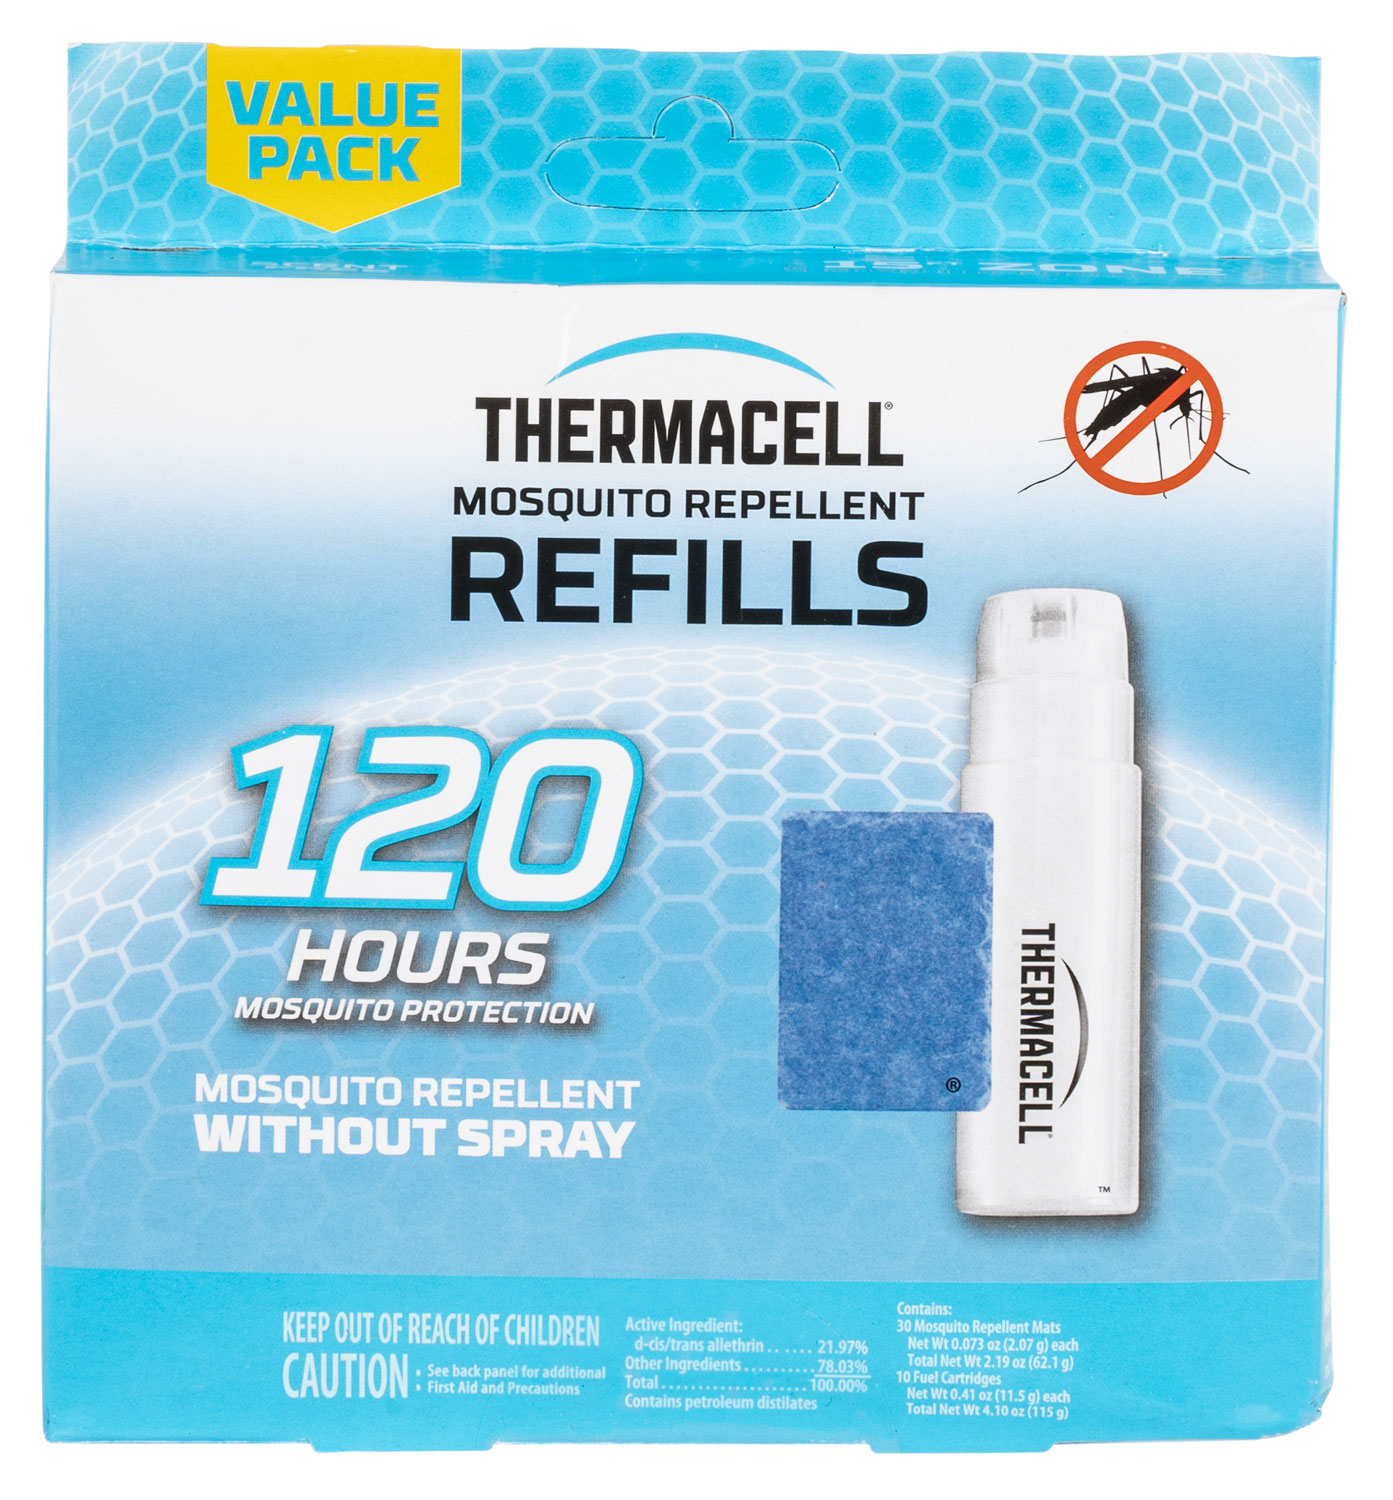 THER R-10 MOSQUITO REPELLENT REFILLS 120 HOURS